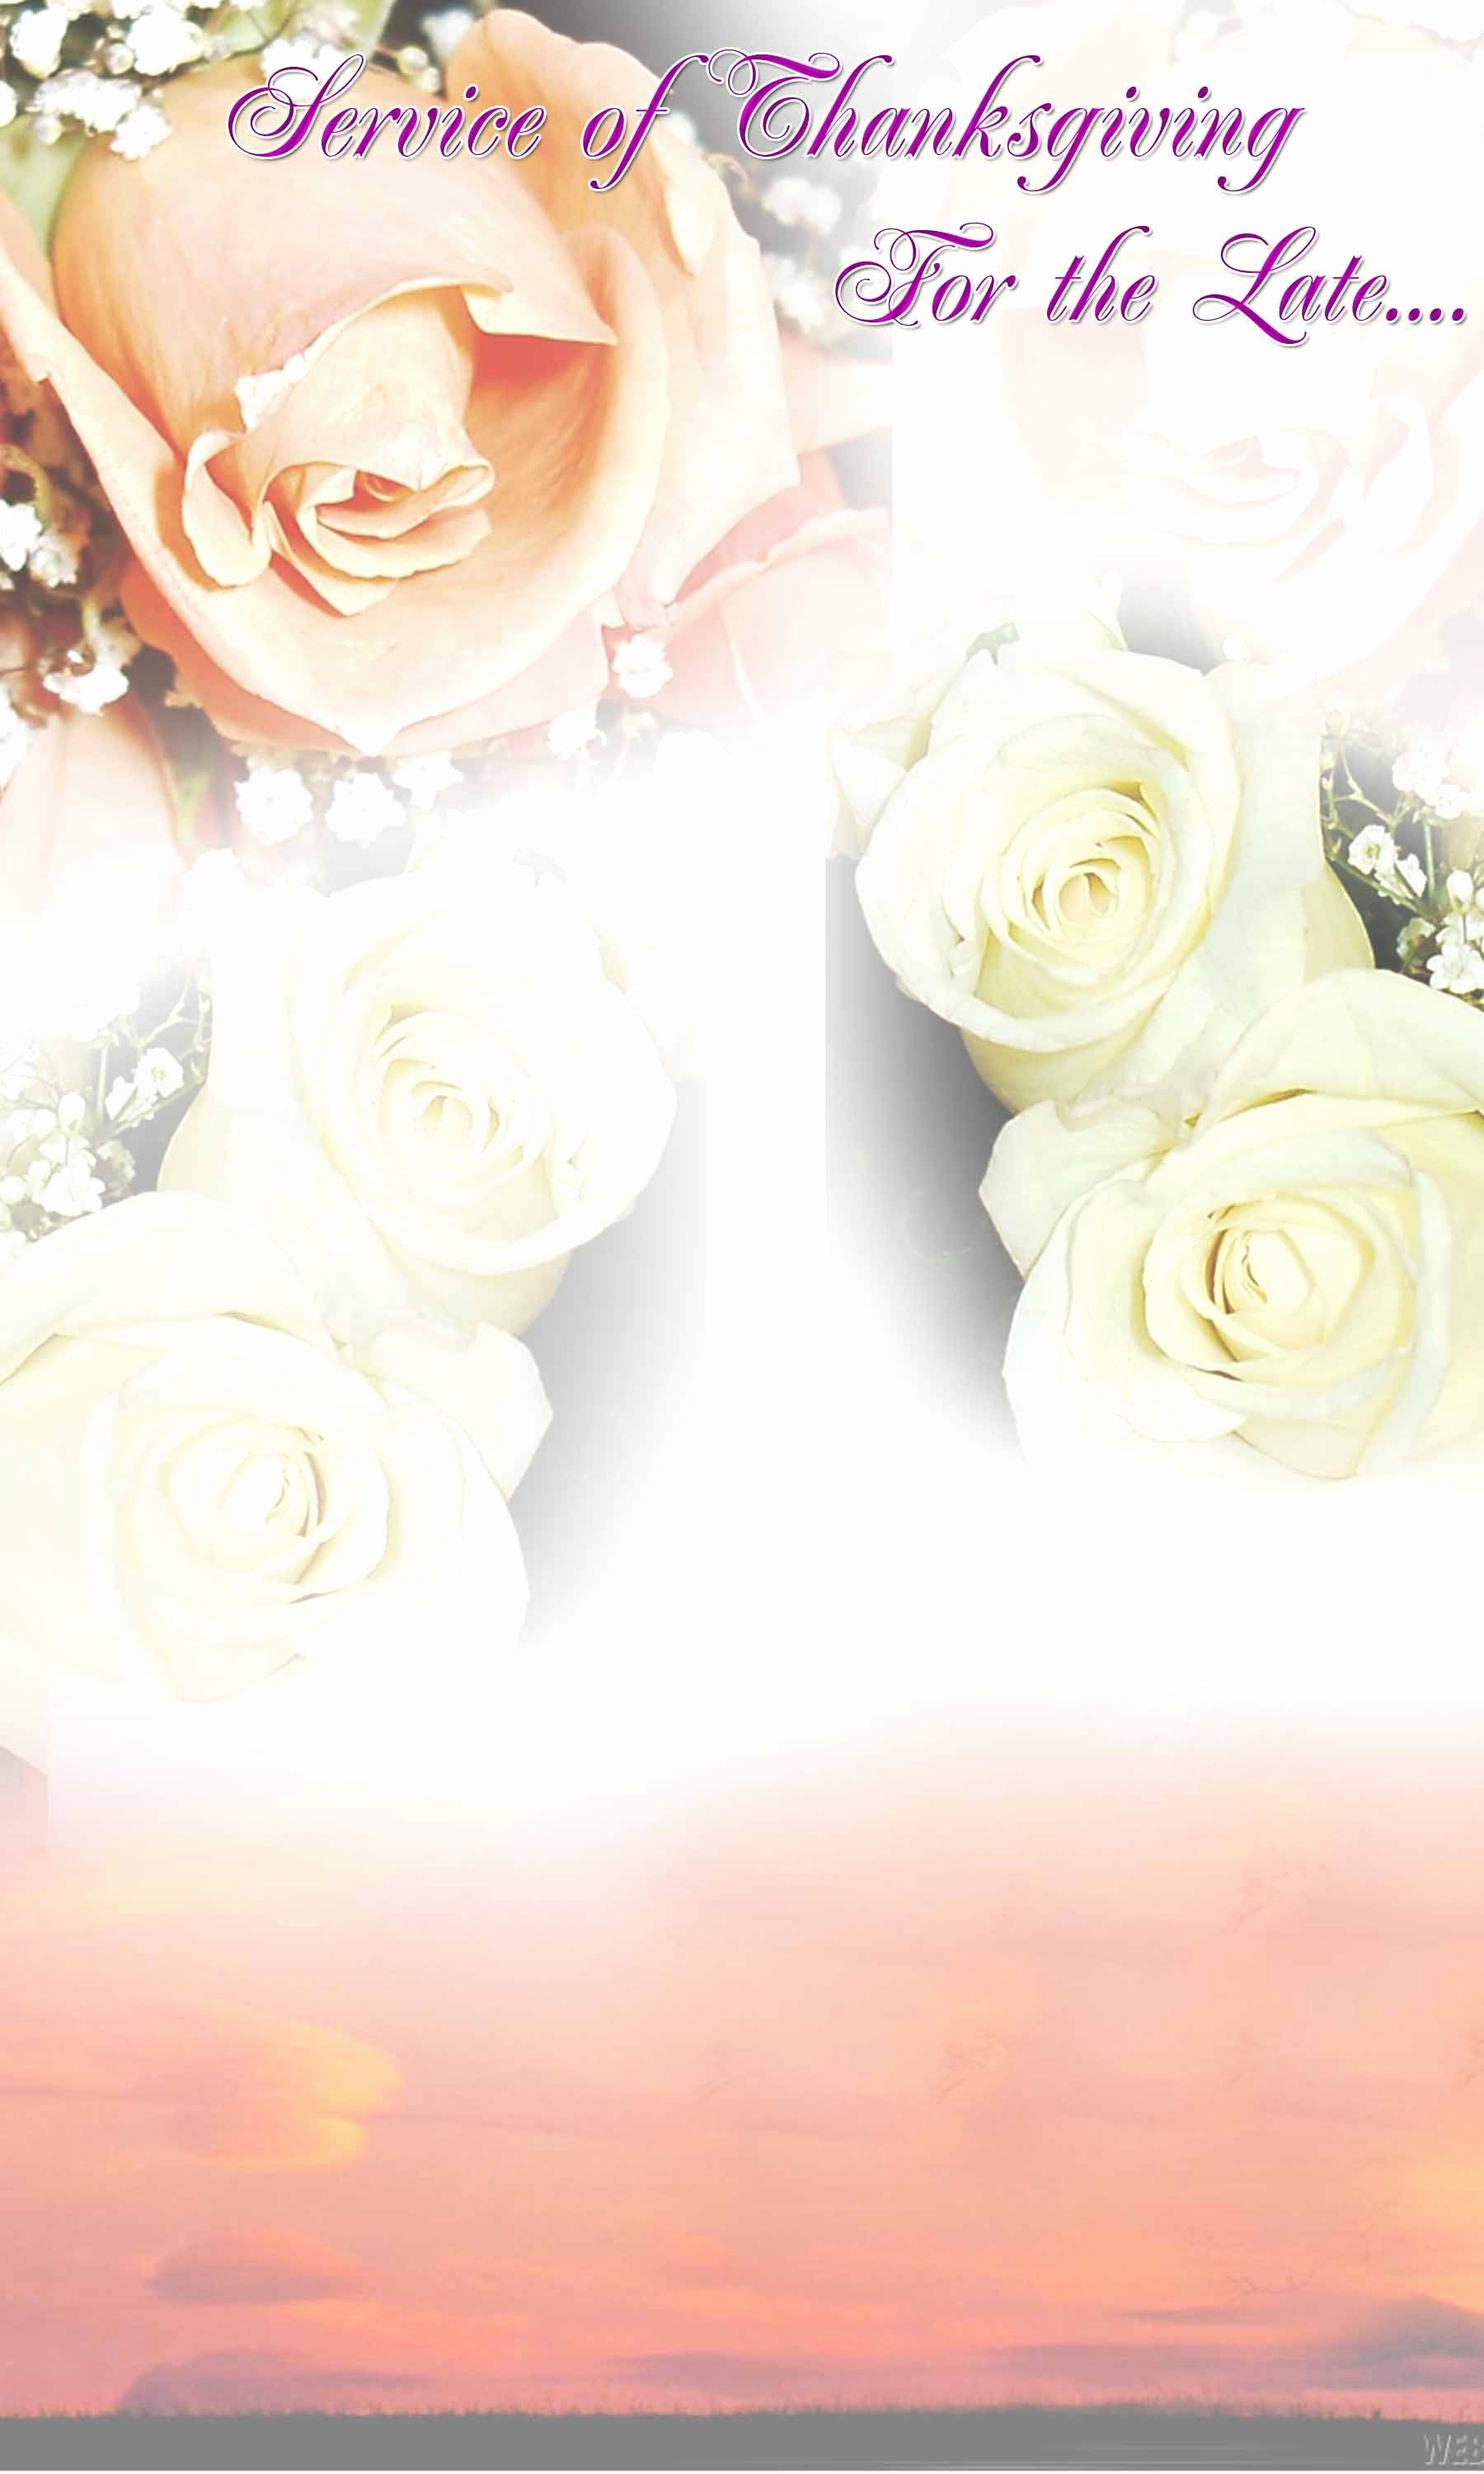 Free Funeral Program Backgrounds New Funeral Backgrounds Wallpaper Cave